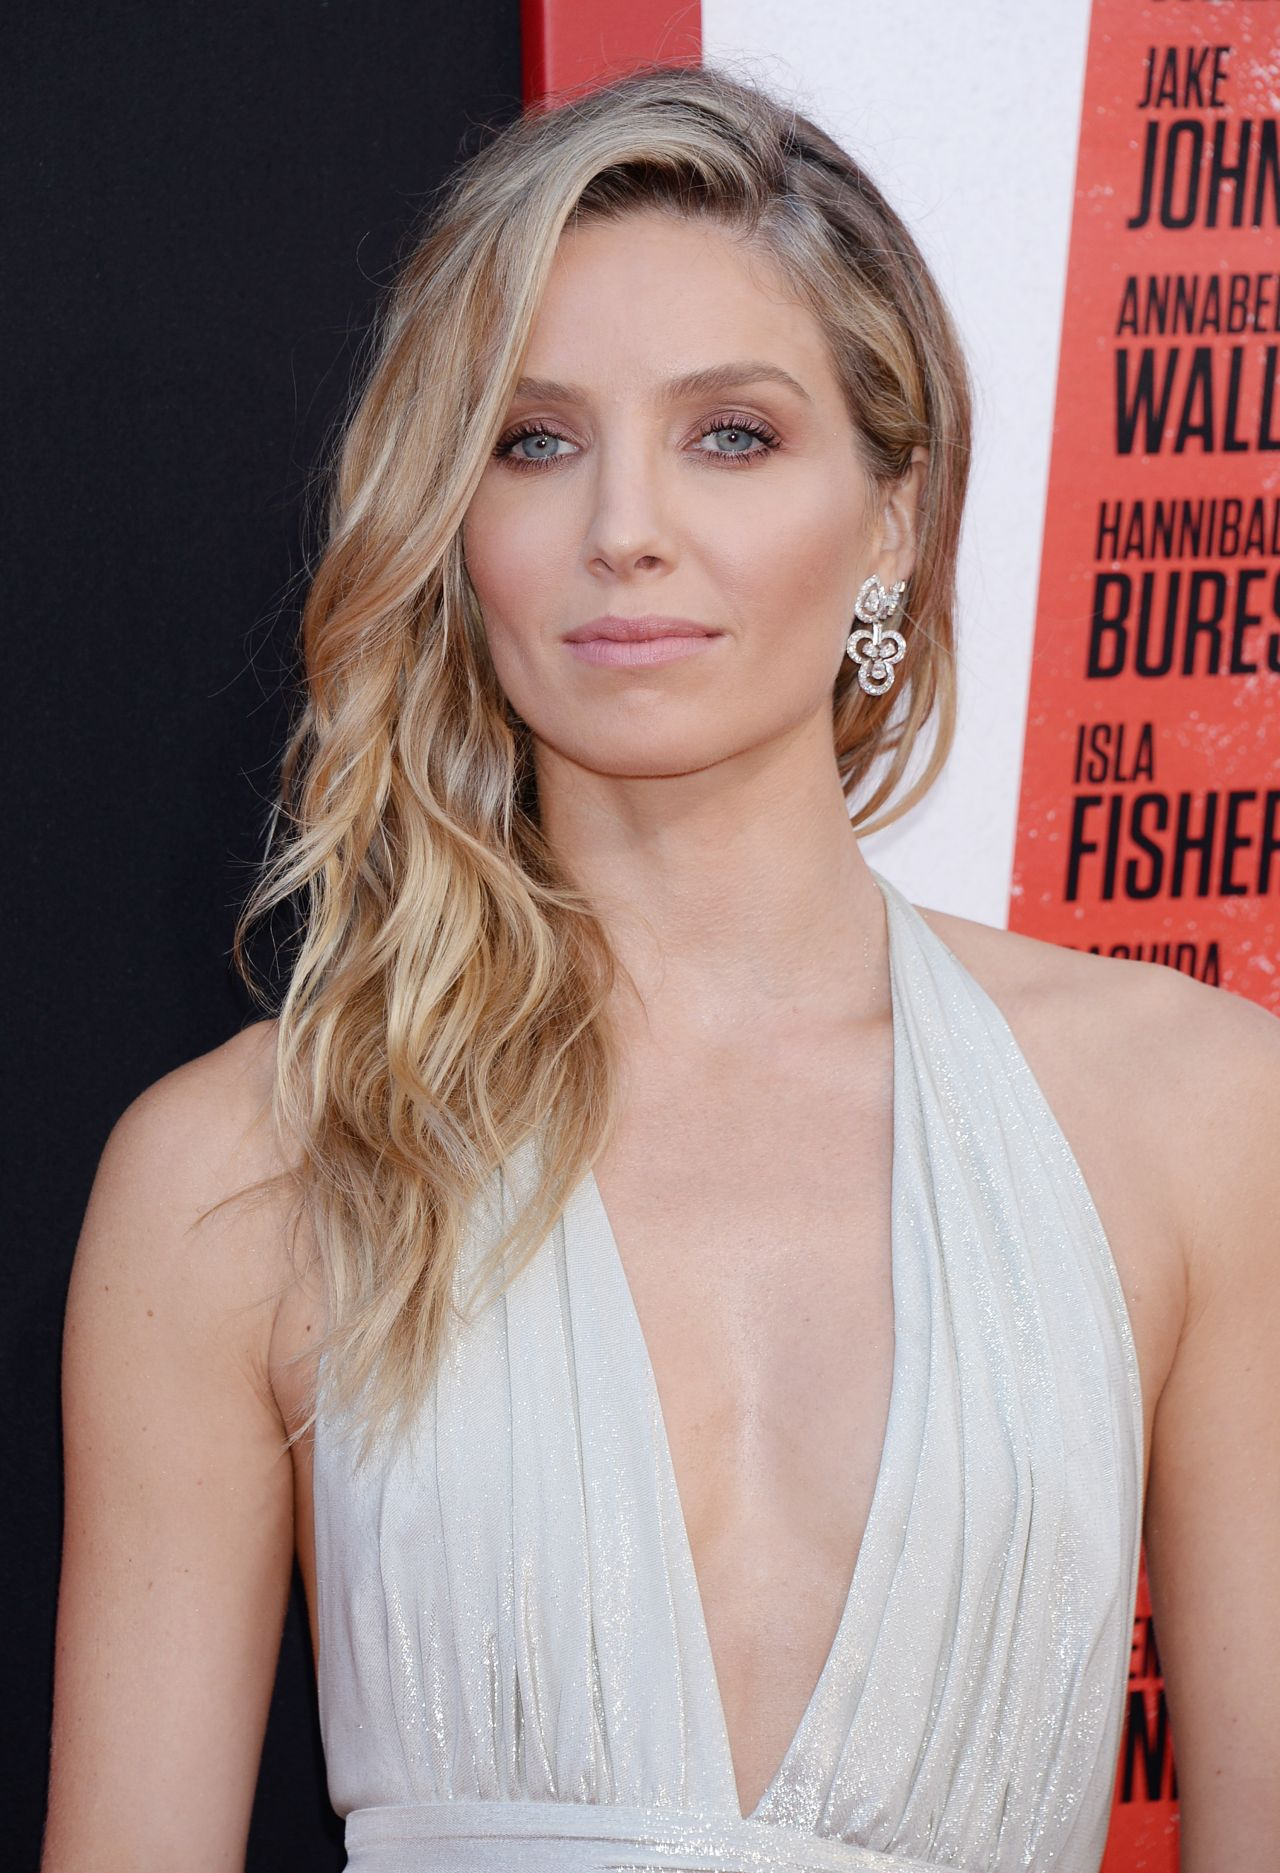 Annabelle Wallis nudes (23 photos), Ass, Leaked, Selfie, panties 2020